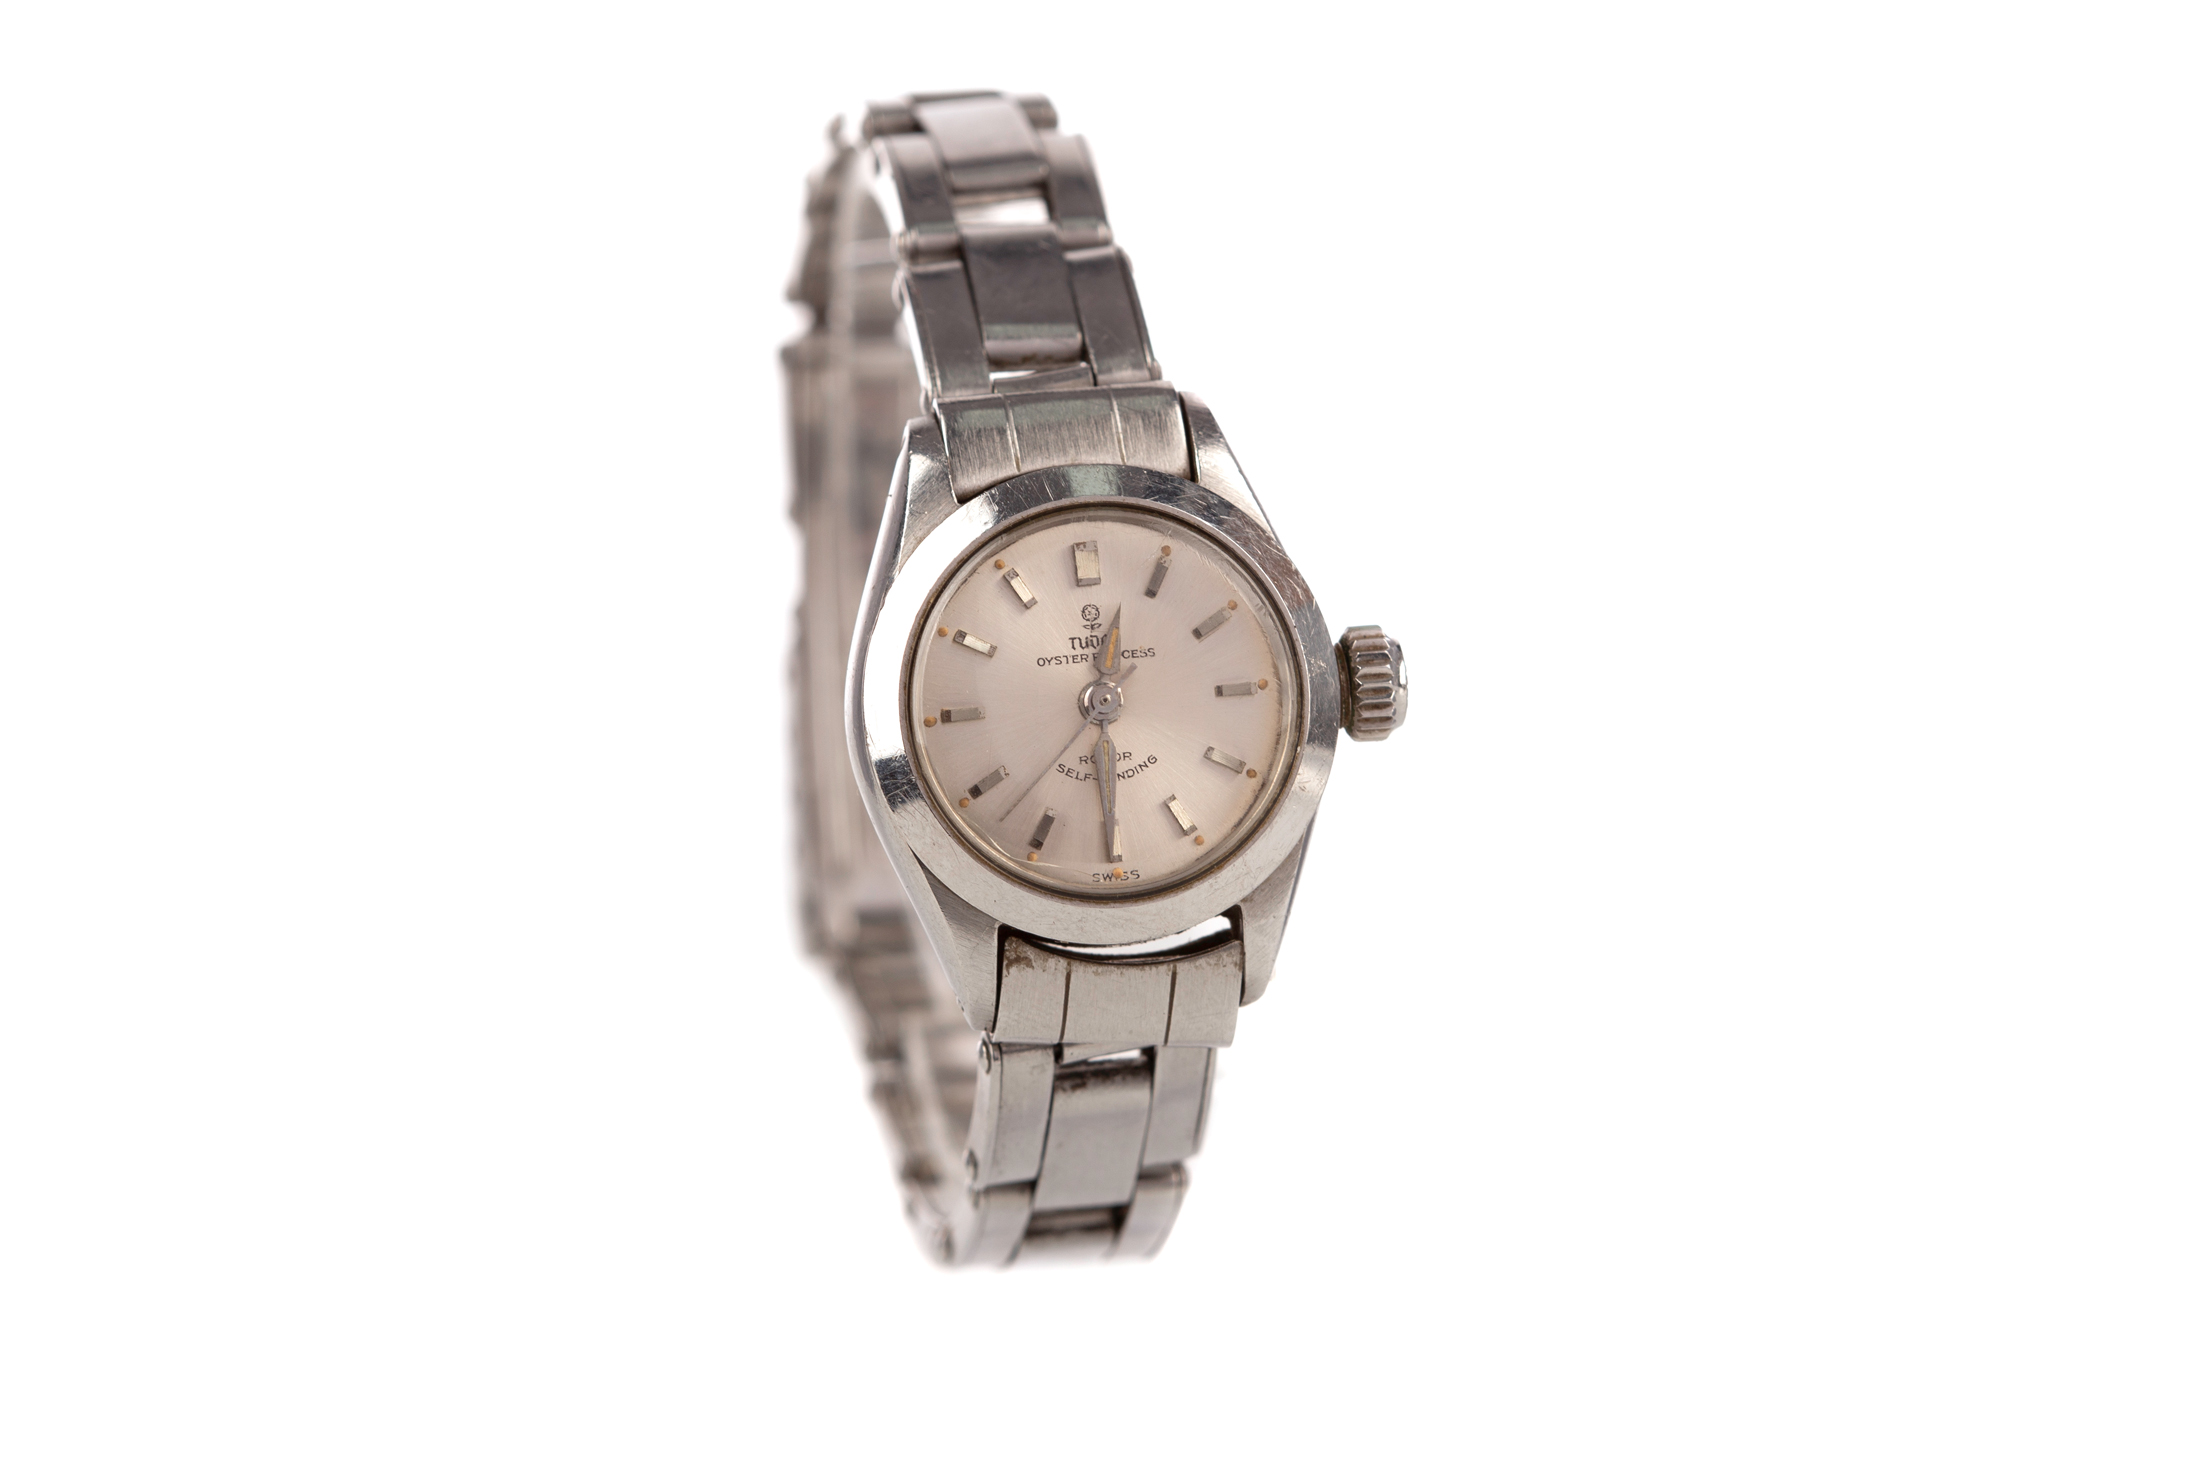 LADY'S TUDOR OYSTER PRINCESS STAINLESS STEEL AUTOMATIC WRIST WATCH, model number 7975, serial number